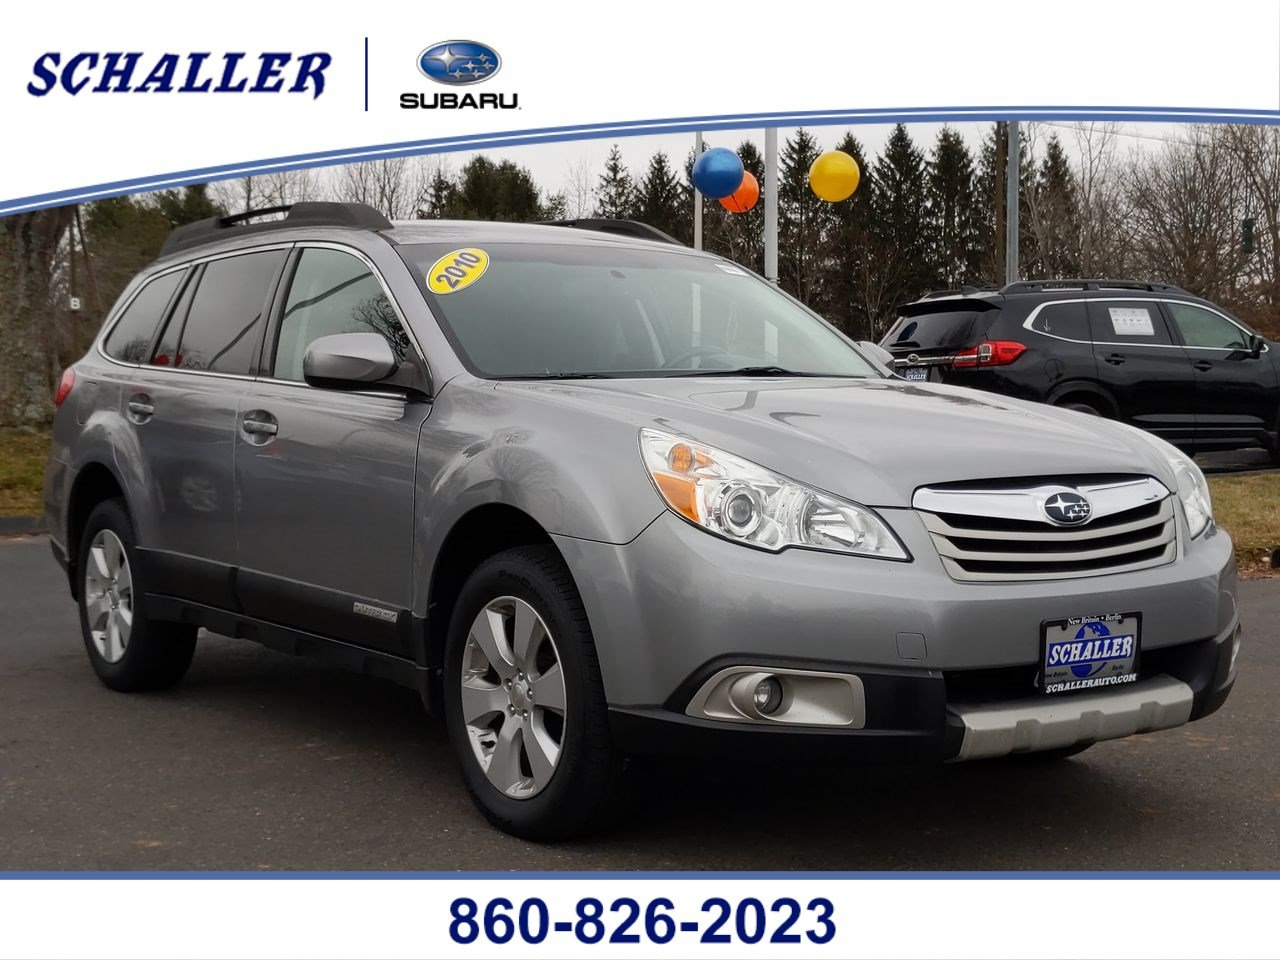 Pre-Owned 2010 Subaru Outback Prem All-Weather